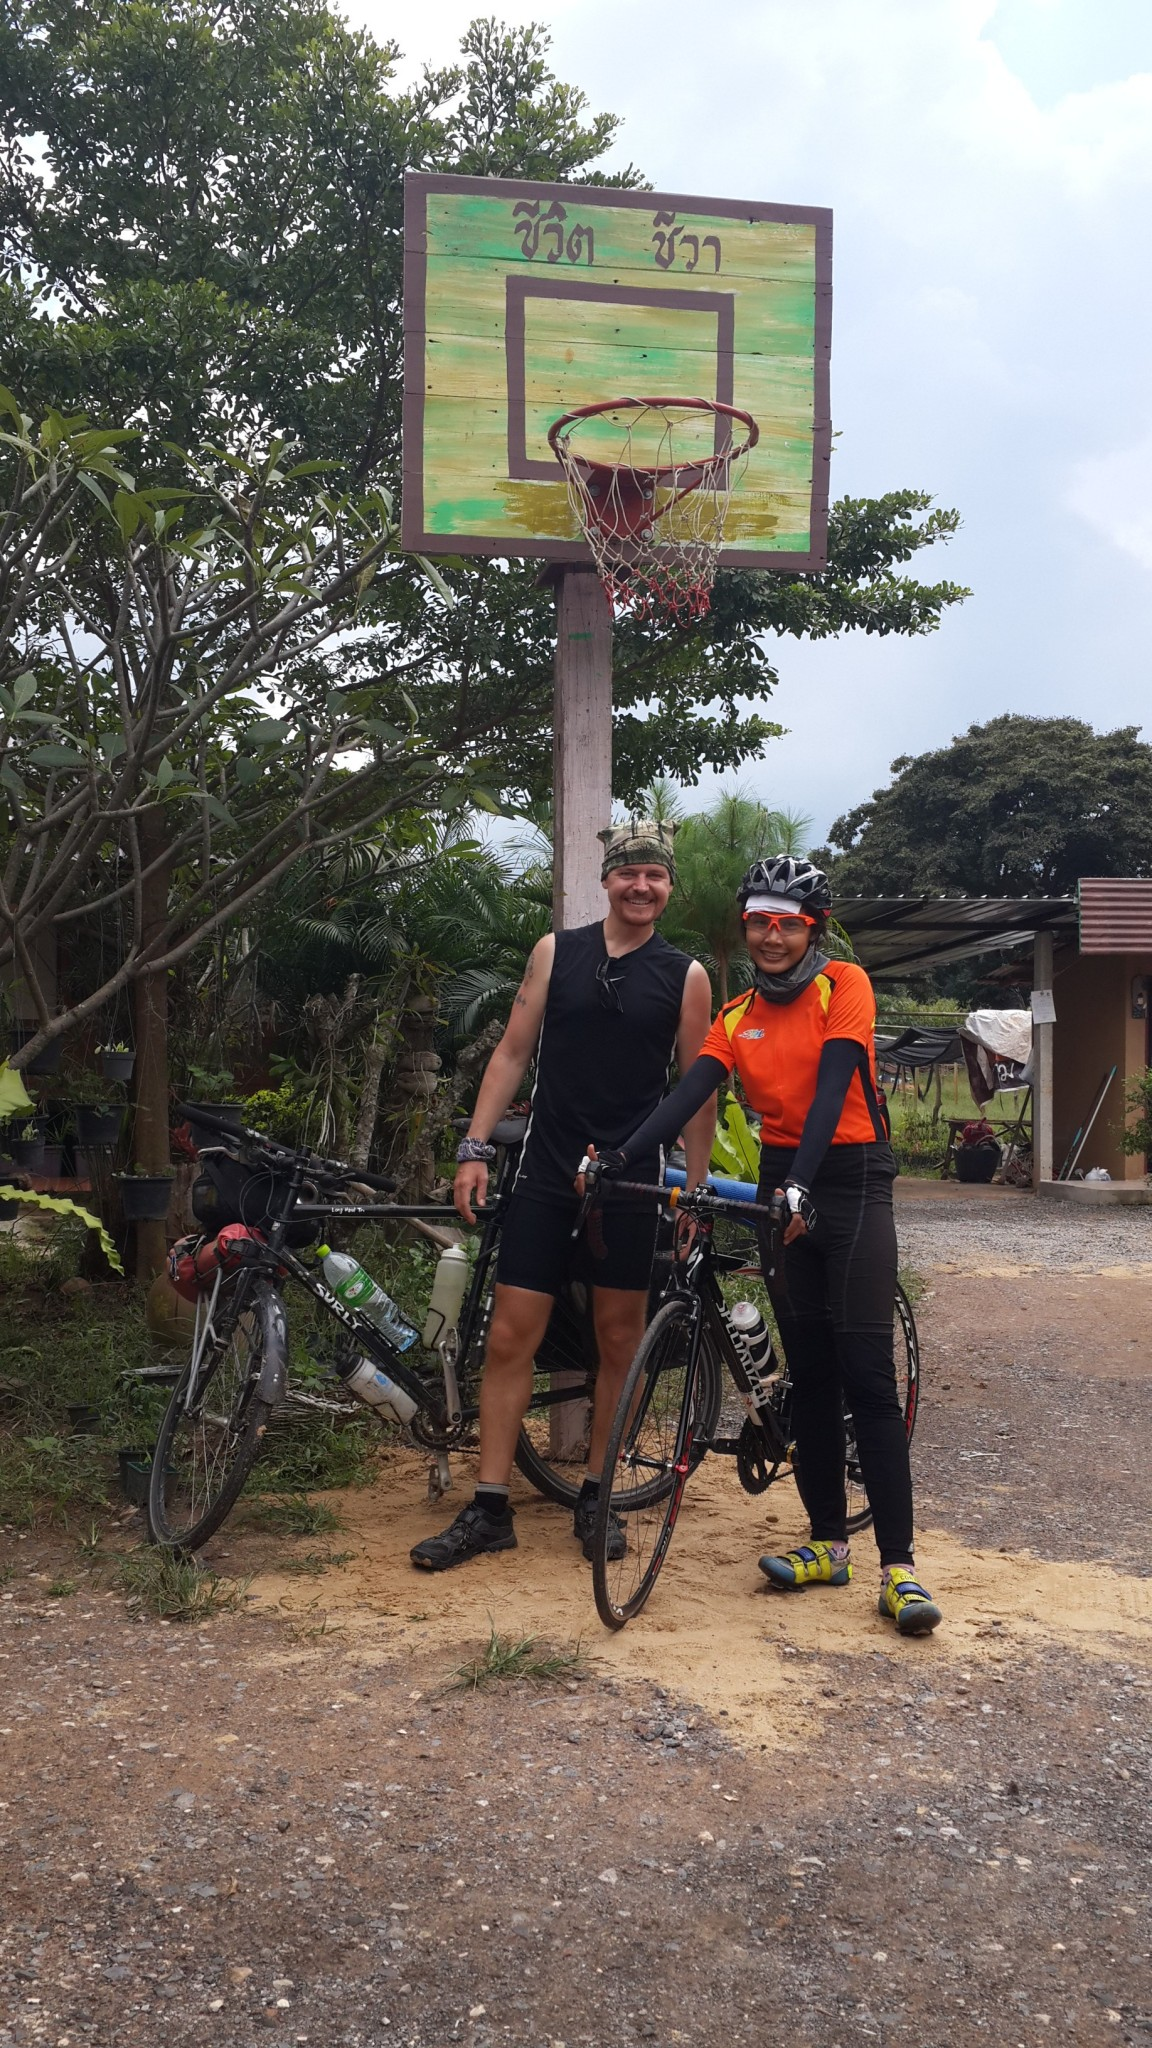 I managed to catch Oh and invited her for lunch. Oh was cycling 150 km to visit her sister, staying the night, then cycling 150 km home. Good work Oh!